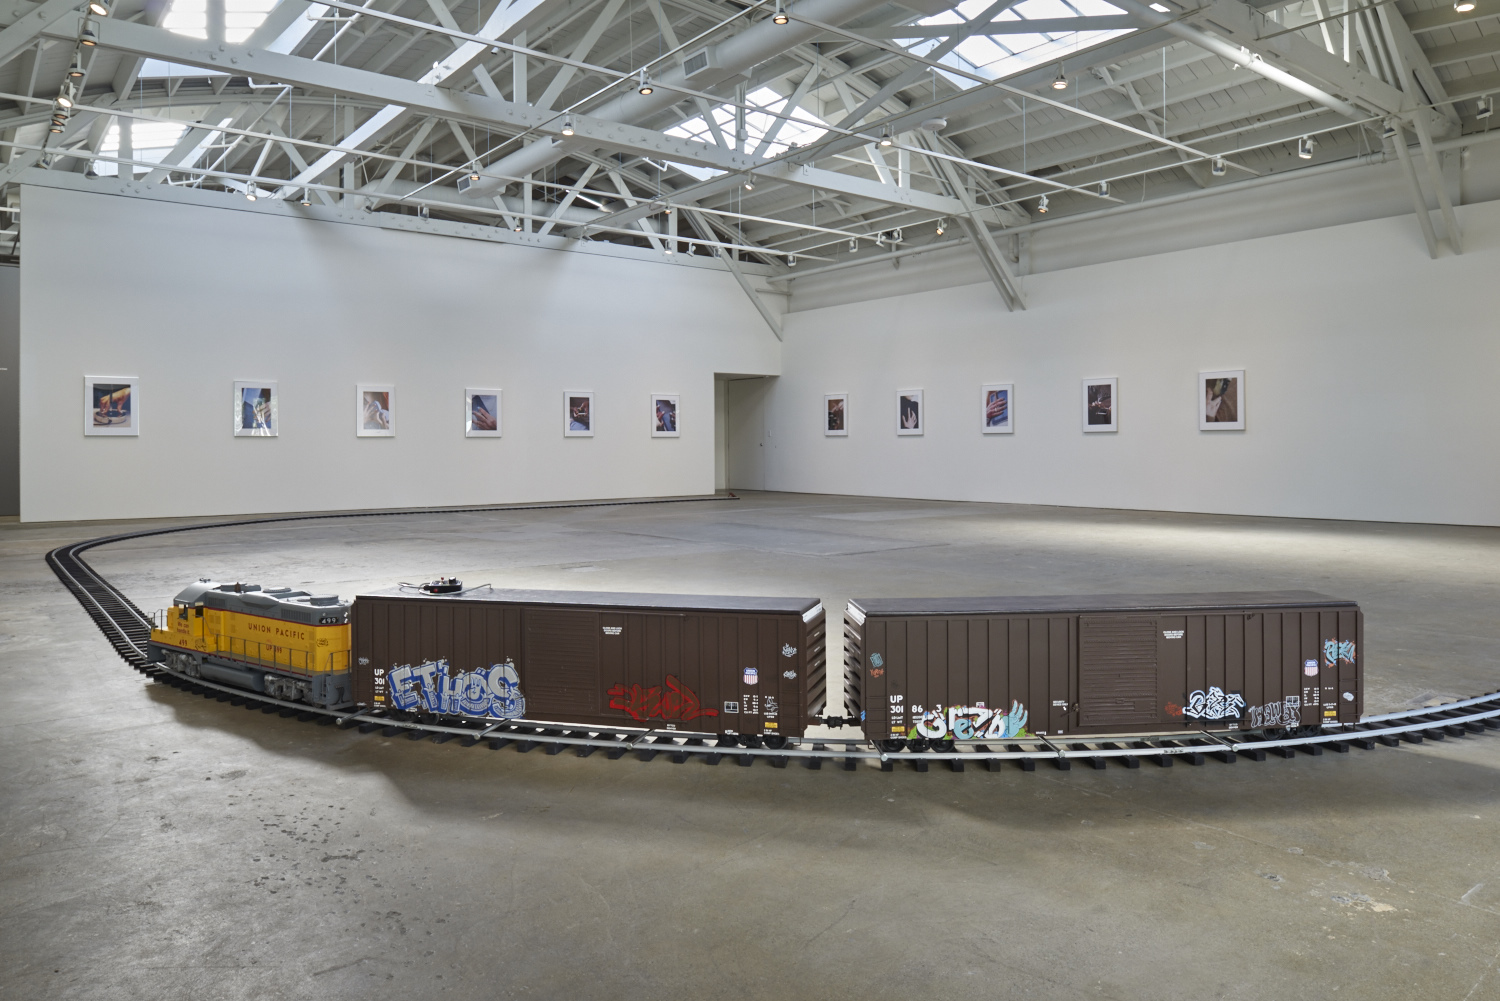 Josephine Pryde, Lapses In Thinking By The Person I Am, installation view at the CCA Wattis Institute for Contemporary Arts, May 5 - August 1, 2015. Courtesy CCA Wattis Institute for Contemporary Arts. Photo by Johnna Arnold.